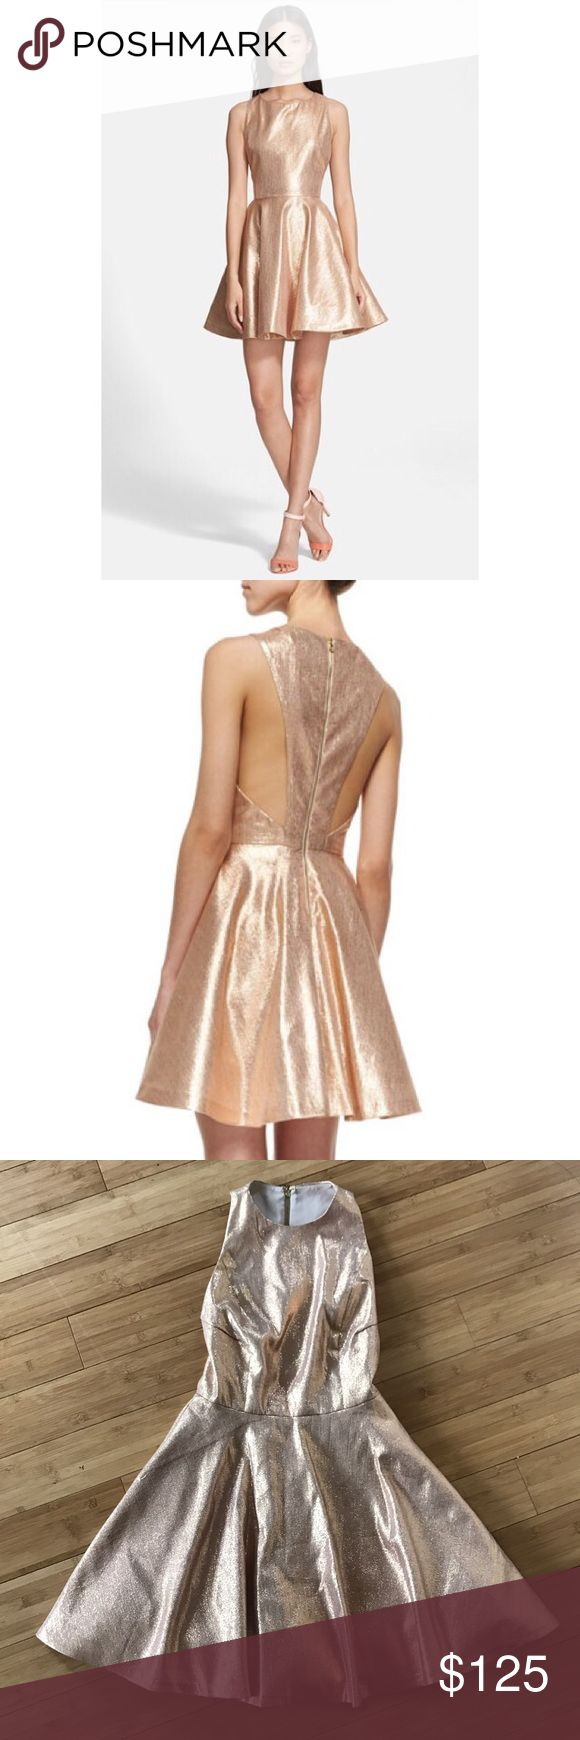 ROSE GOLD FOIT N FLARE DRESS This stunning silk and lurex Alice & Olivia Lia dress has a sexy back cut out and fits perfectly. There is a lining too! Perfect for summer weddings, birthdays or that special event....  Alice + Olivia Dresses